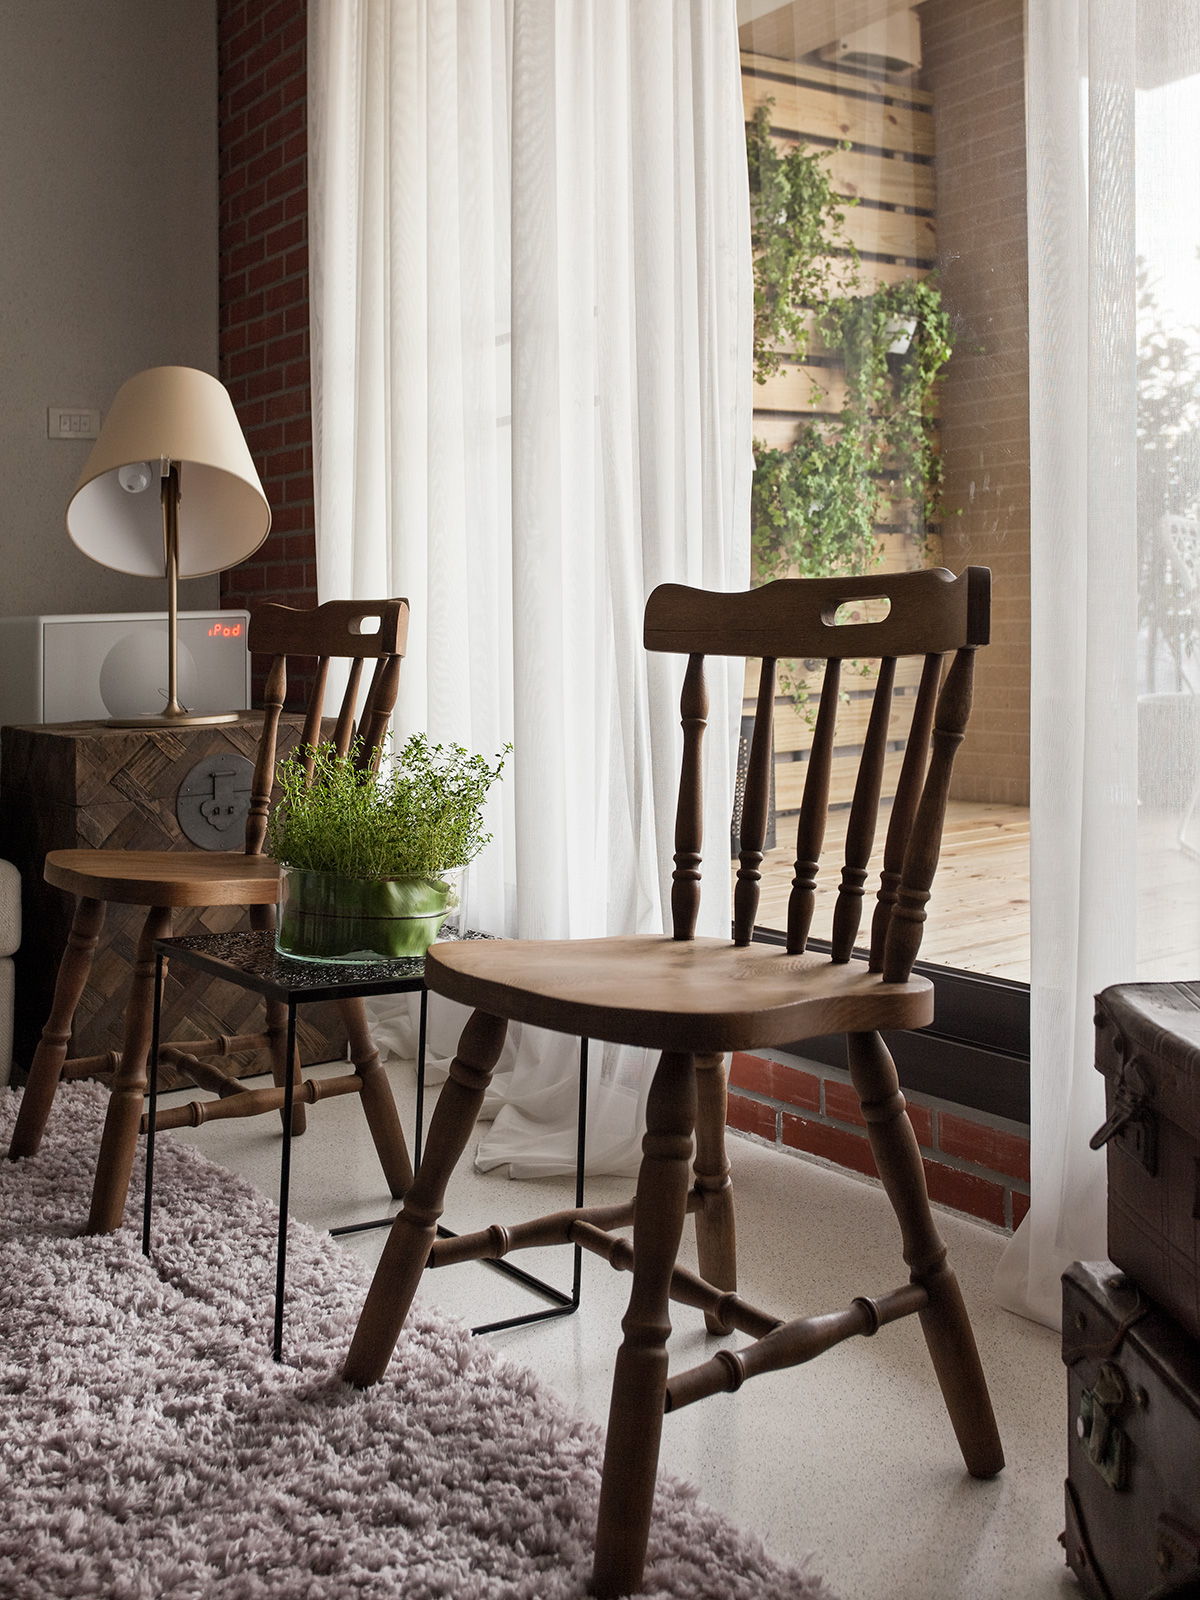 Antique Chairs In Front Of Window Interior Design Ideas